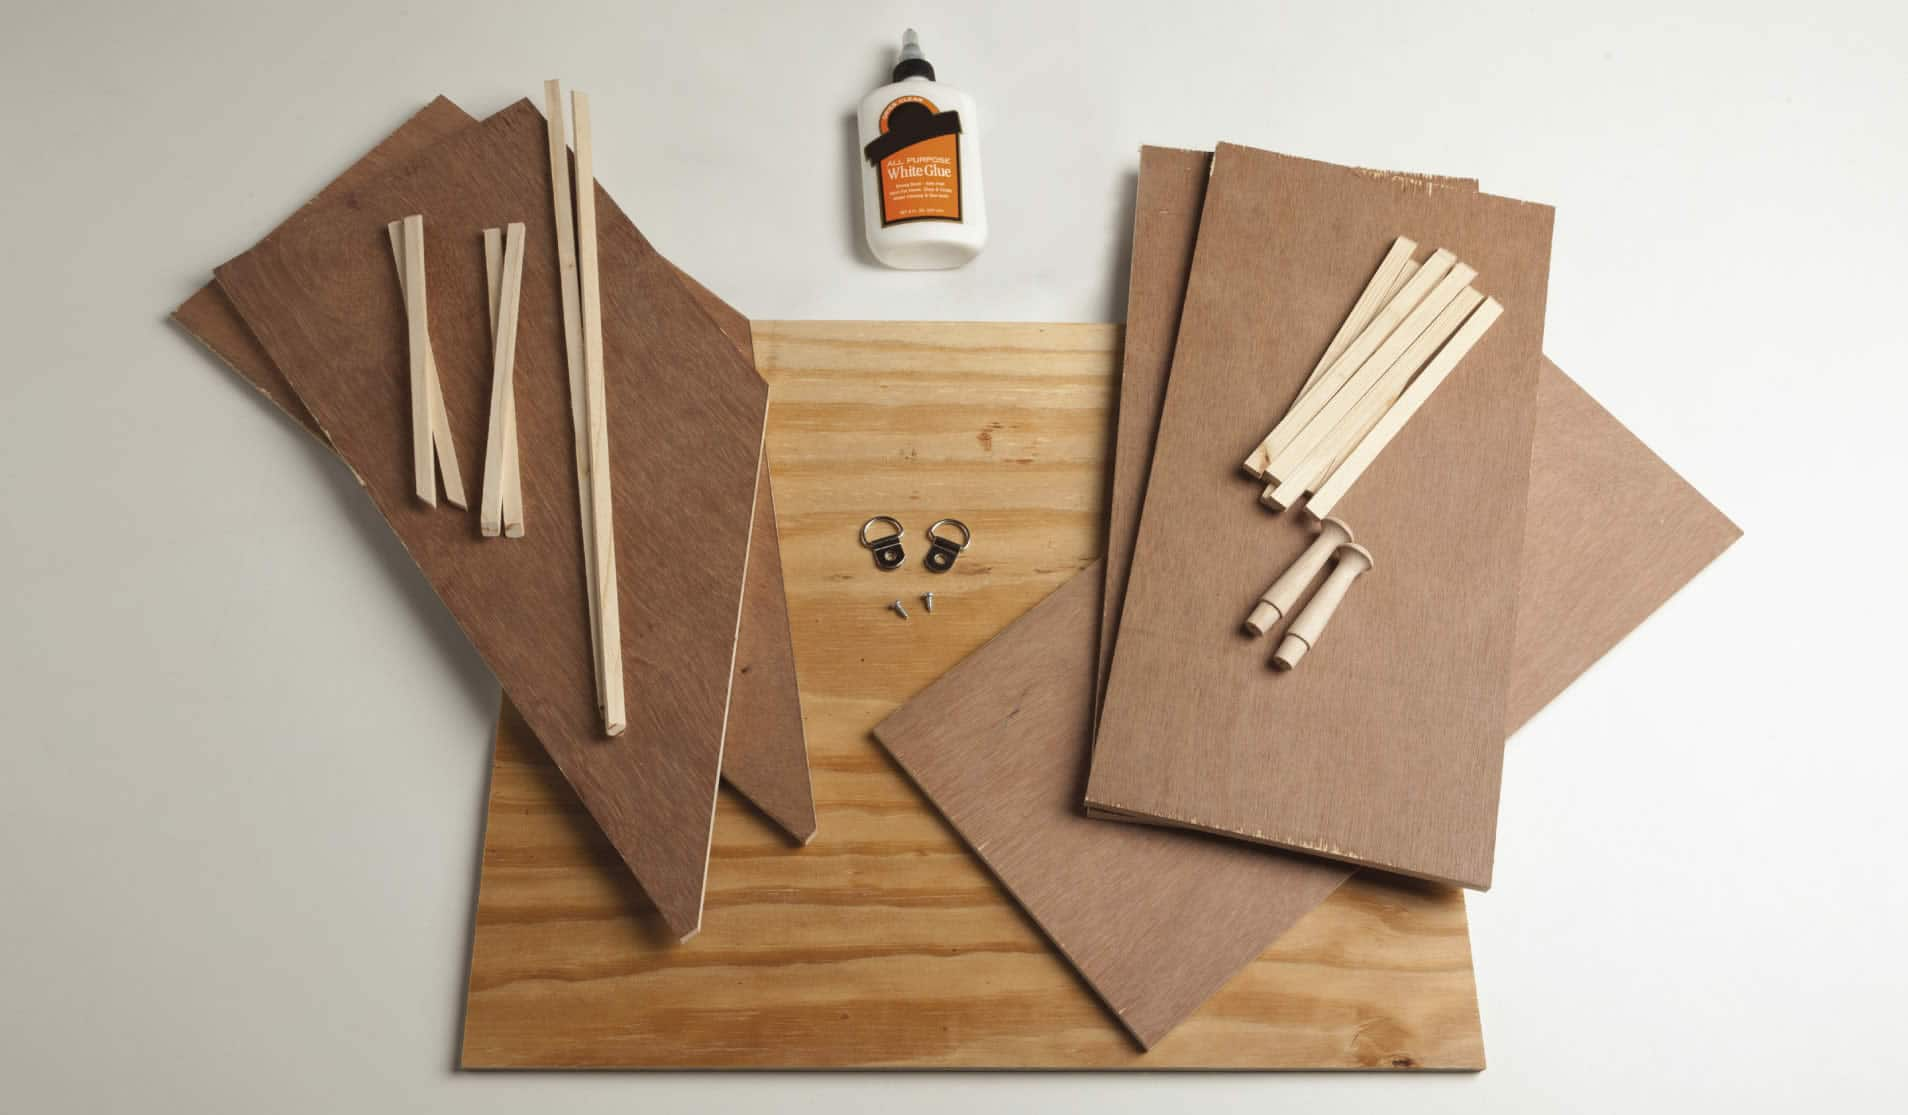 tool-organizer-arrow-project-supplies.jpg